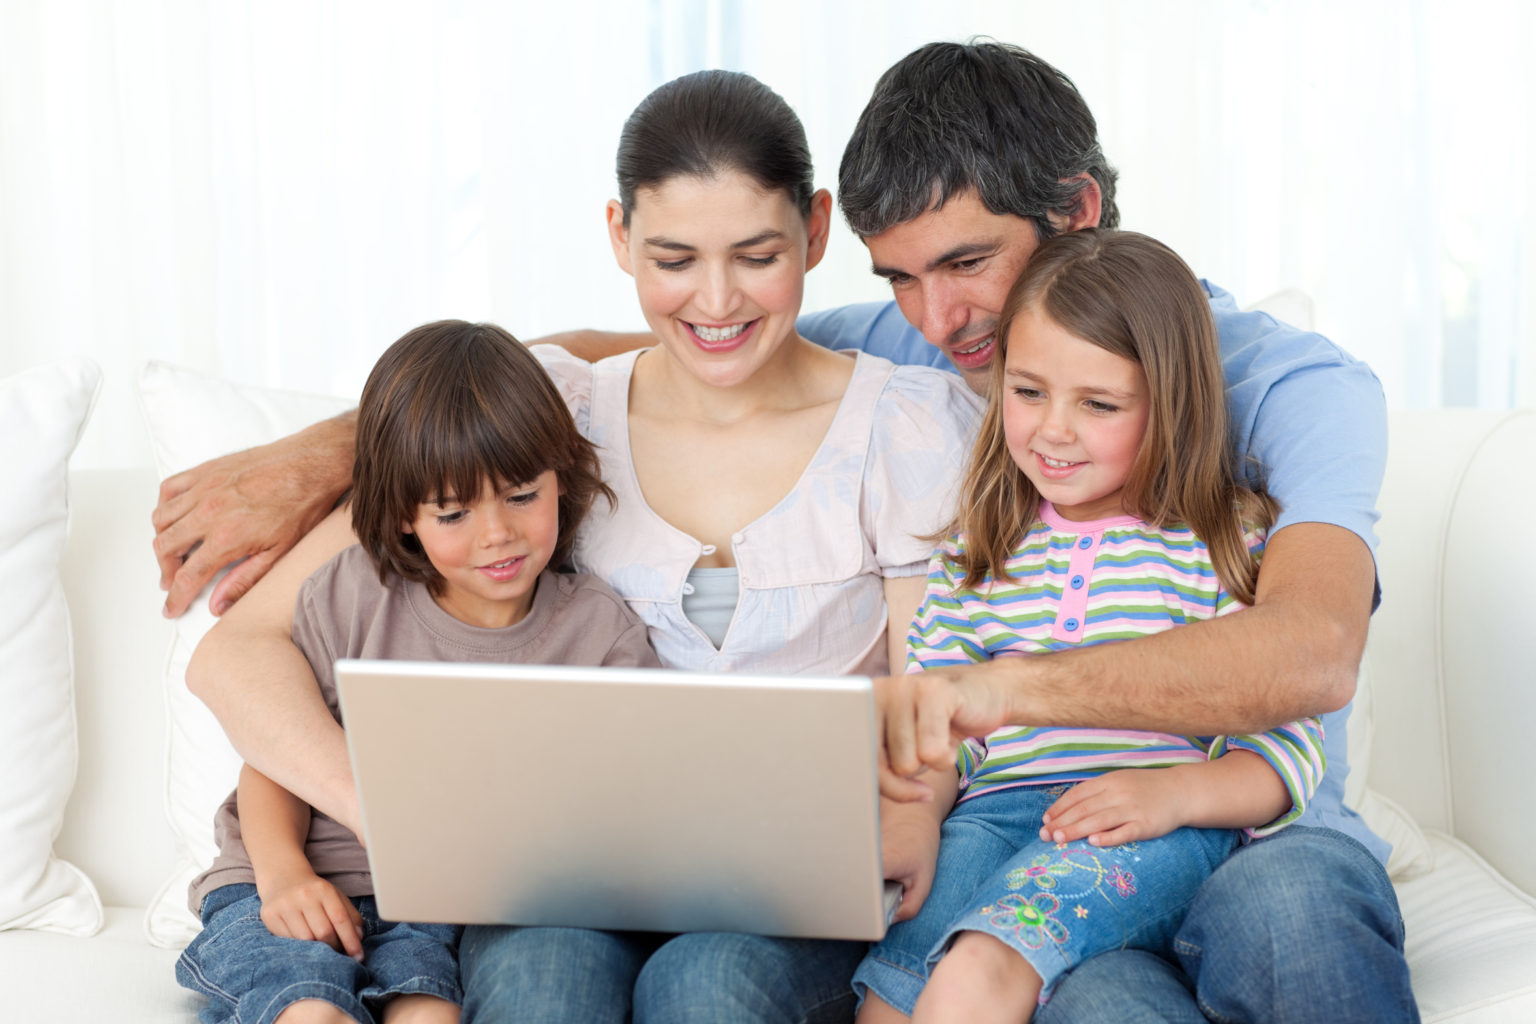 Jolly family using a laptop on the sofa at home